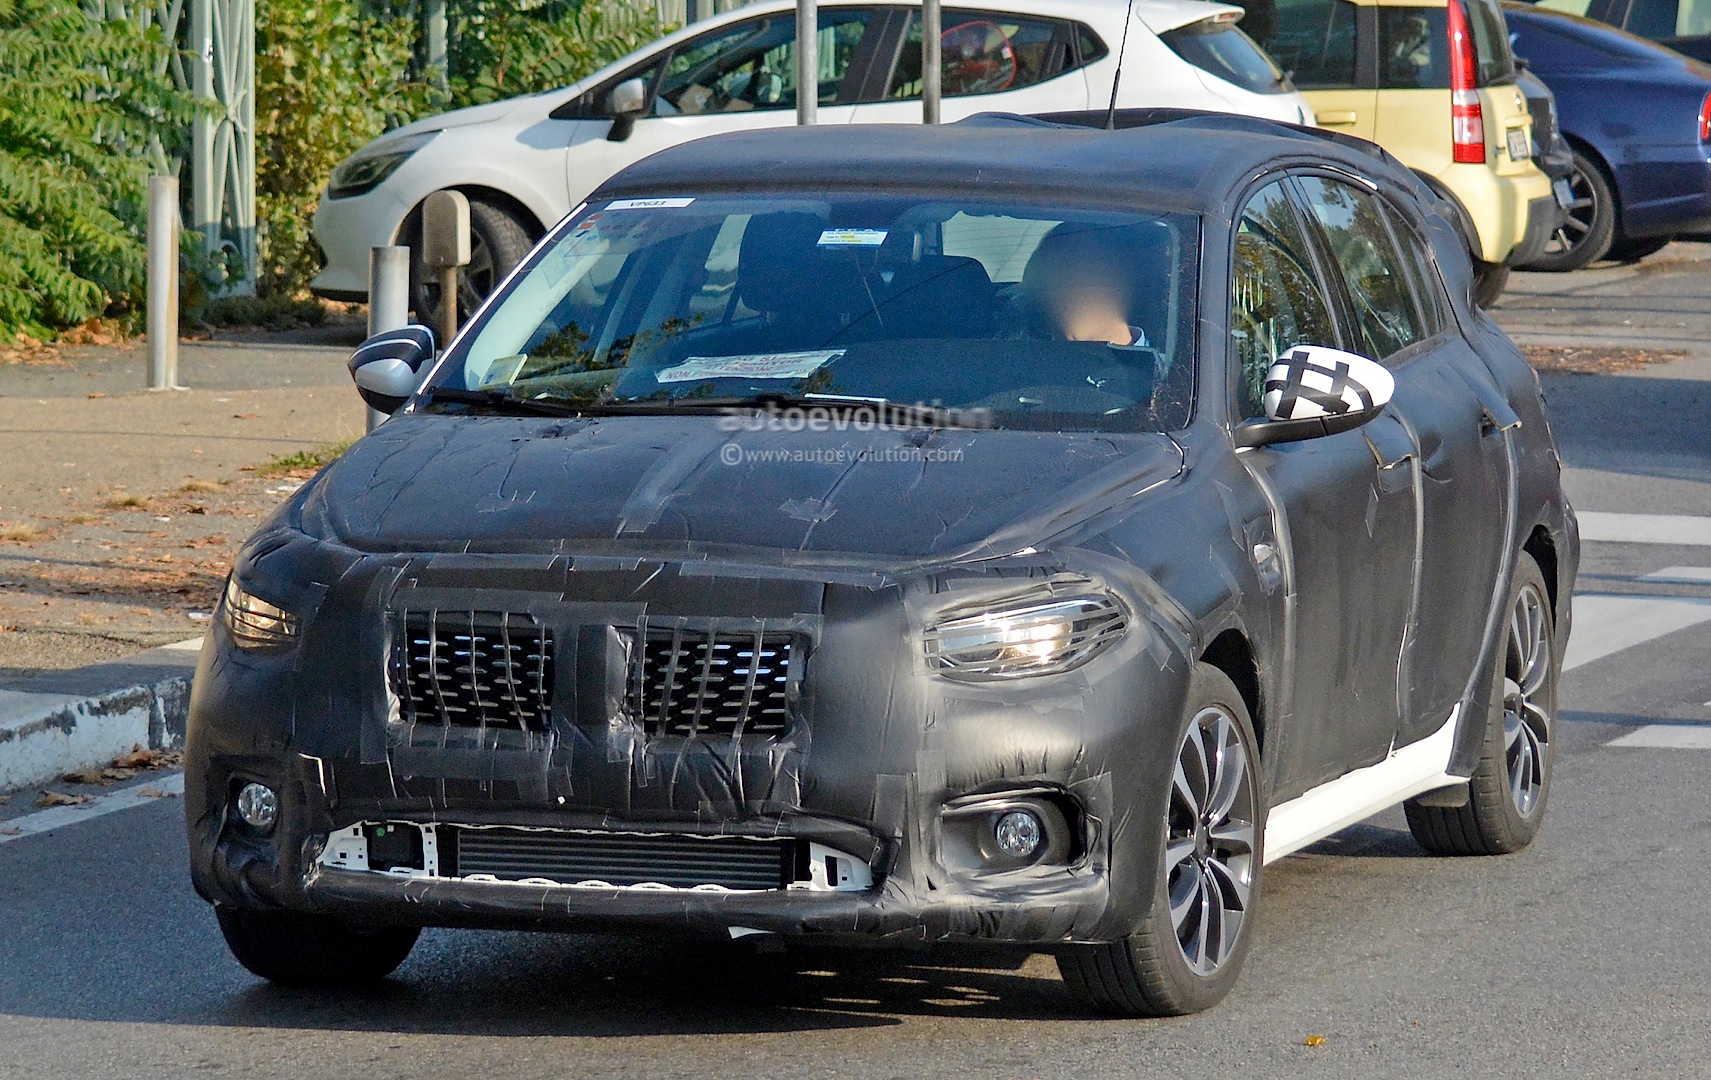 2016 Fiat Tipo Hatchback First Spy Photos Show Future Golf Rival